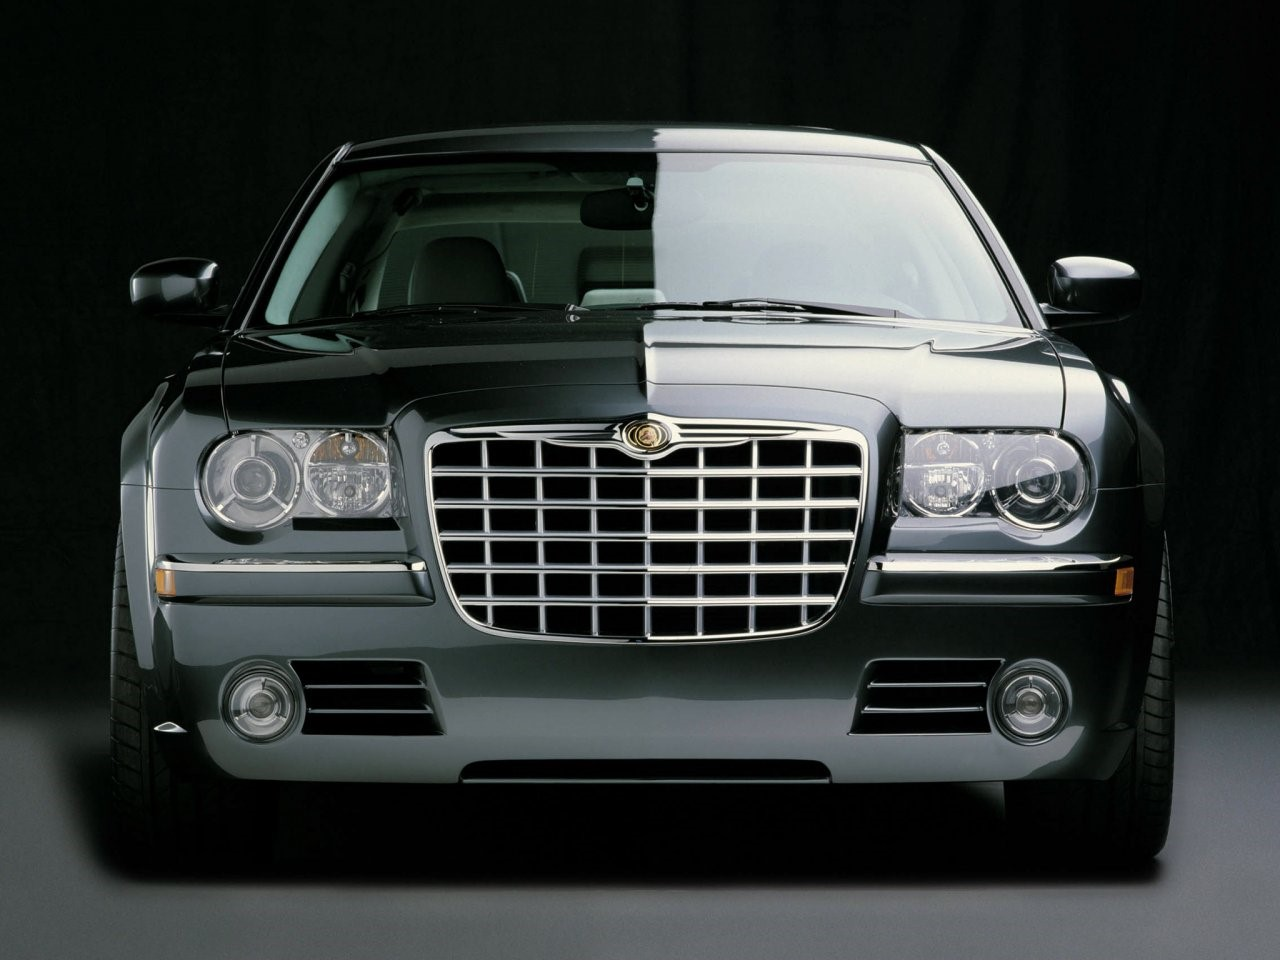 2003 Chrysler 300C concept 1